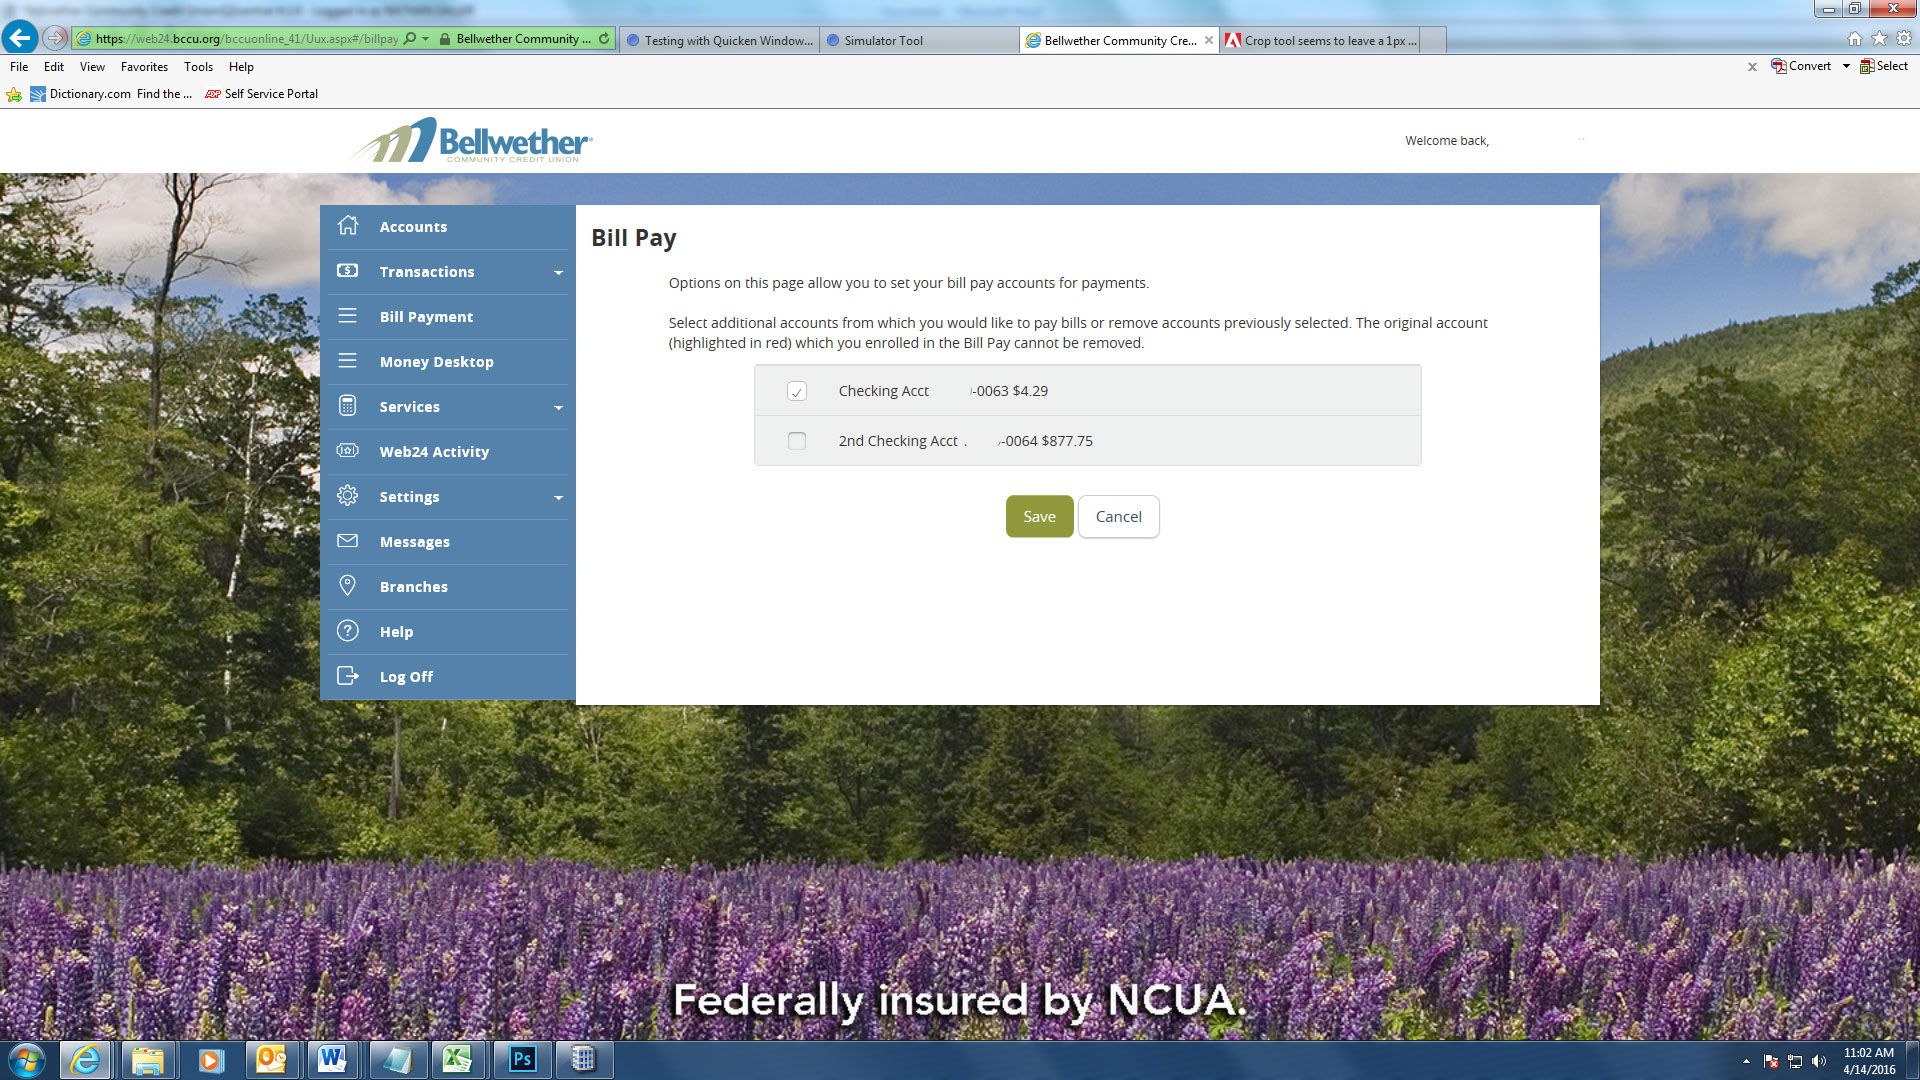 BCCU - WEB24 - Bill Pay - Bellwether Community Credit Union